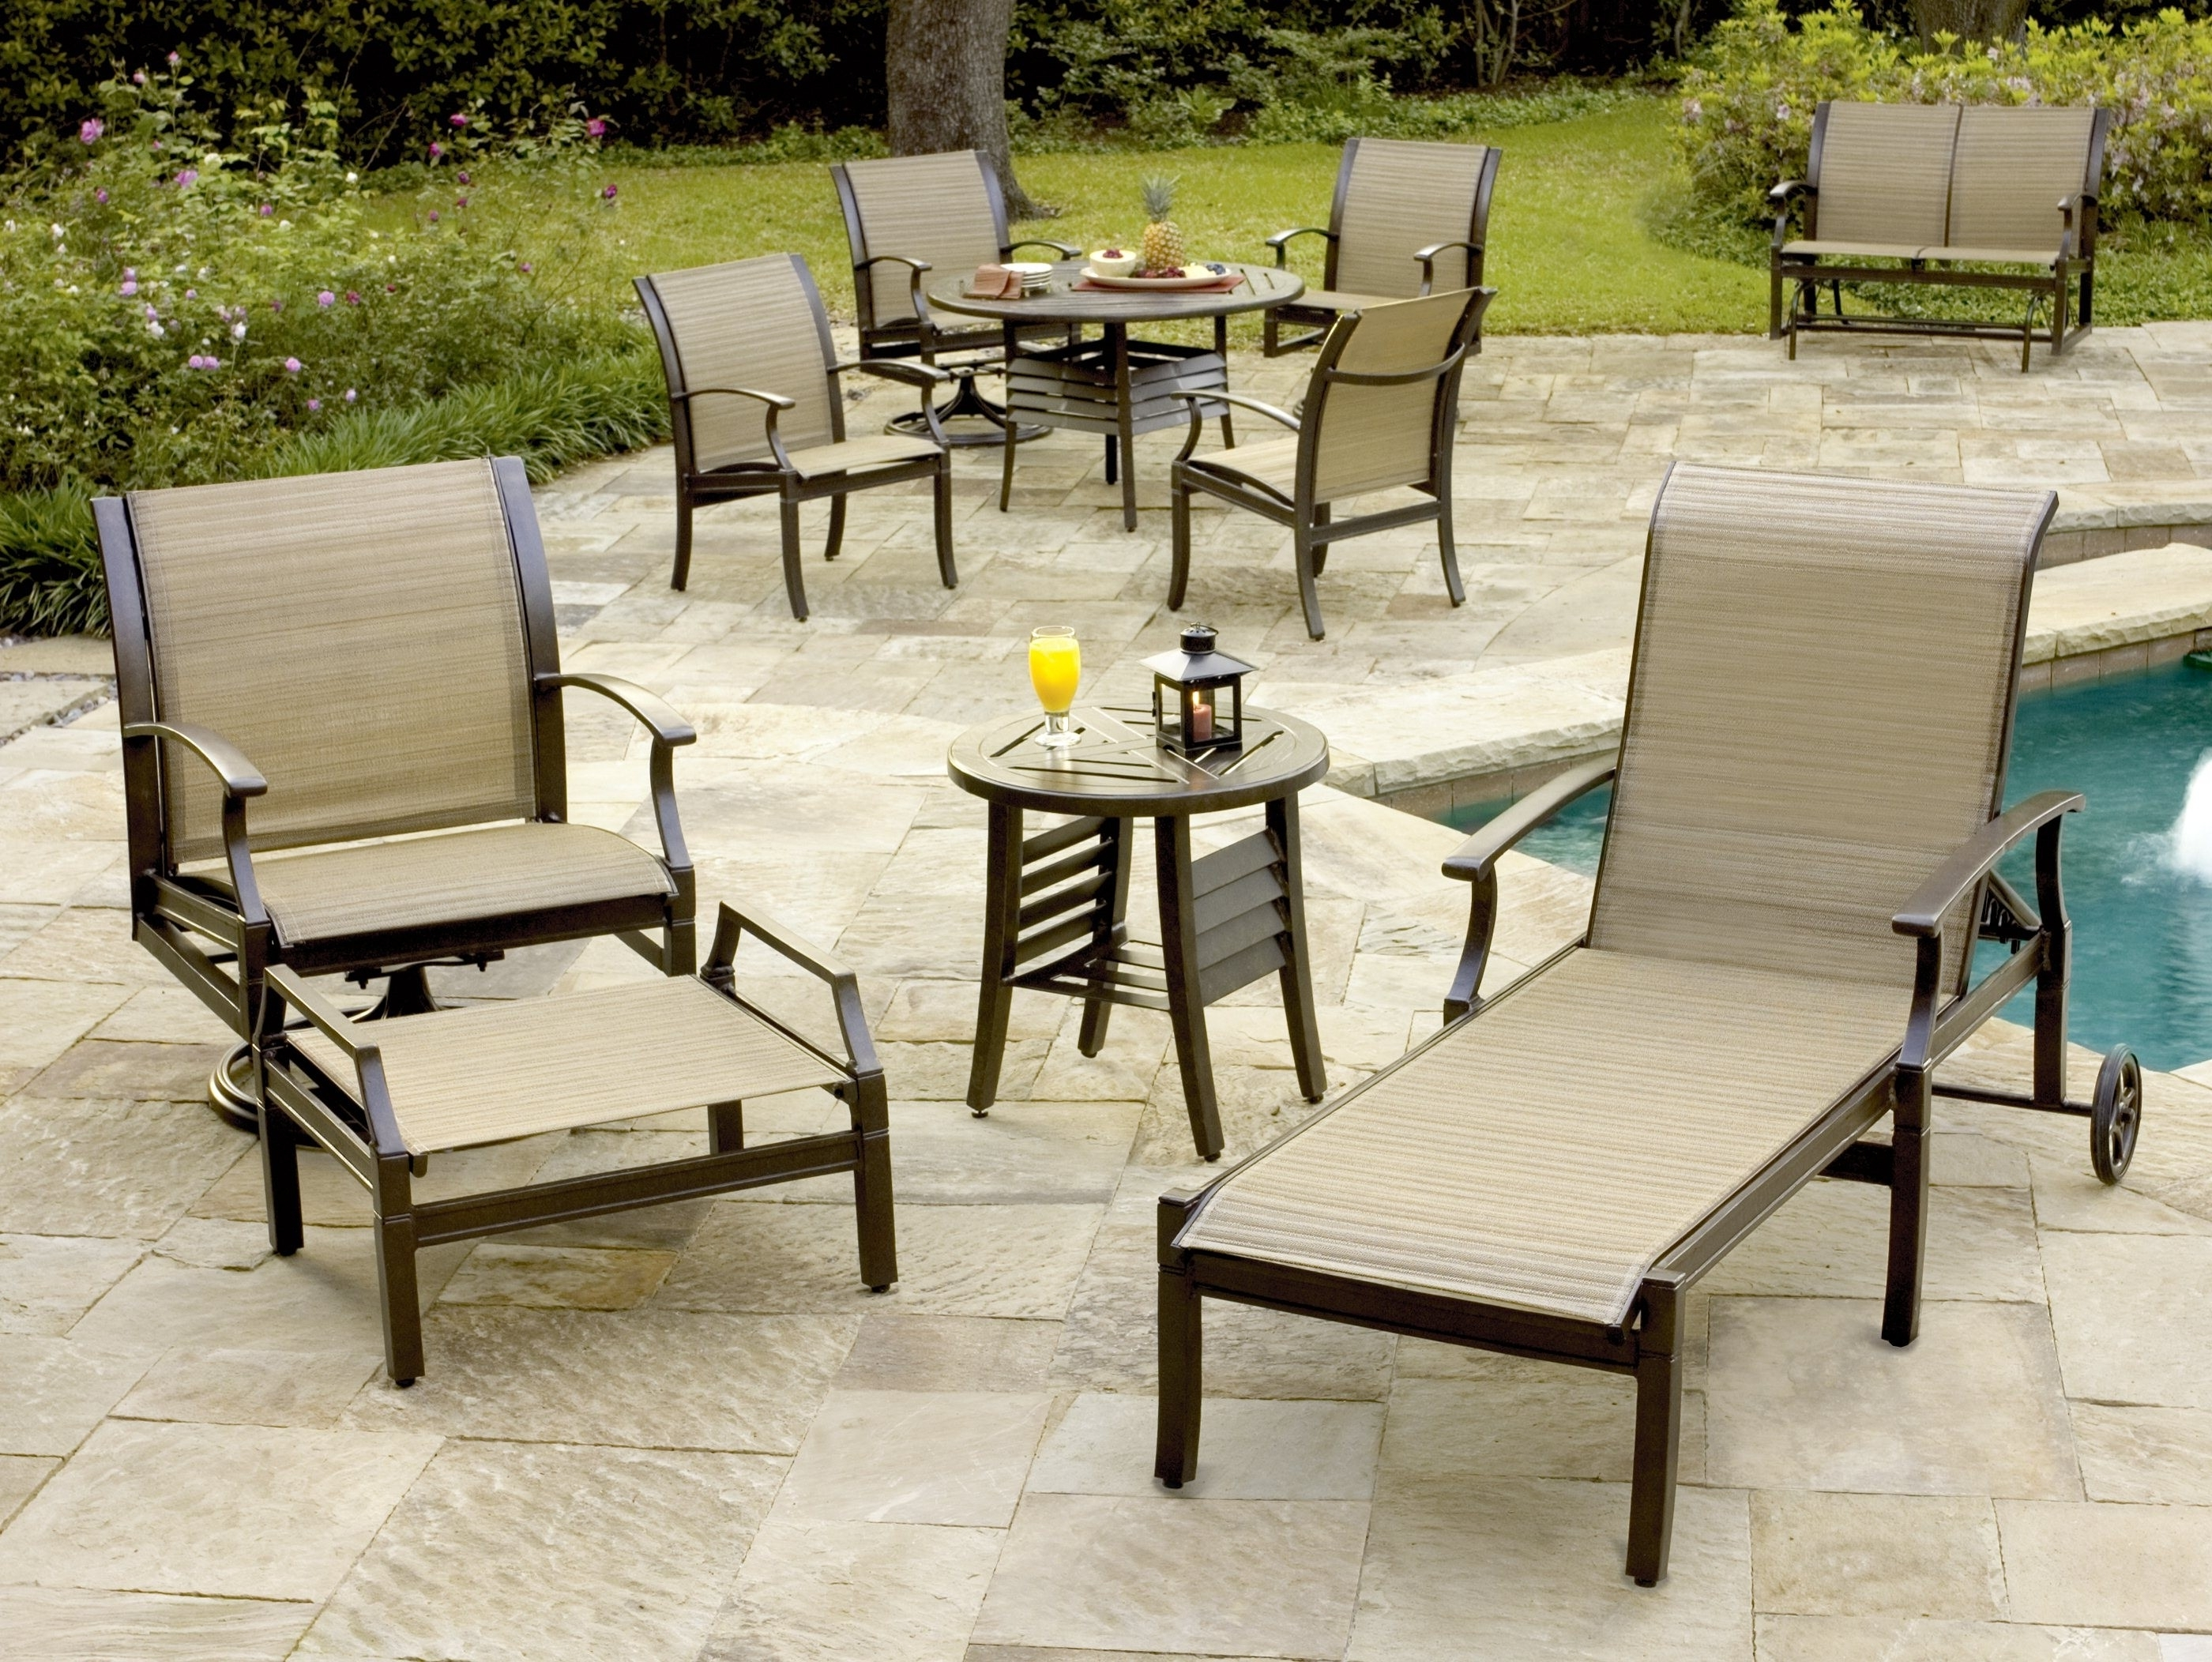 Most Recent Sling Patio Conversation Sets Within Sling Patio Furniture Sets F80X On Excellent Home Design Your Own (View 1 of 15)